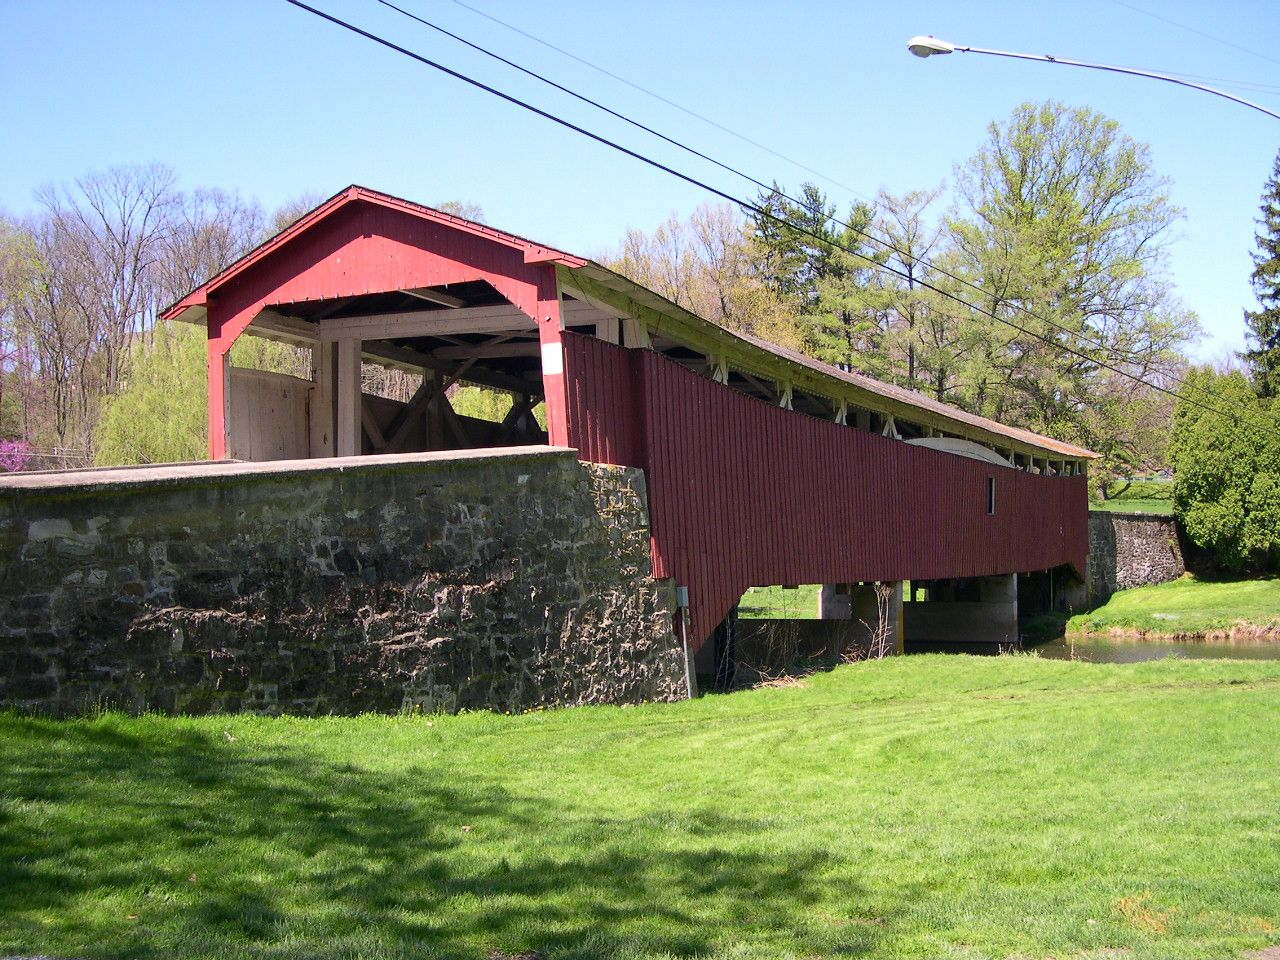 Bogert Covered Bridge, Allentown, PA.  On Natl. Register of Historic Places. 145-foot-long, constructed in 1841. It has vertical plank siding and a gable roof.